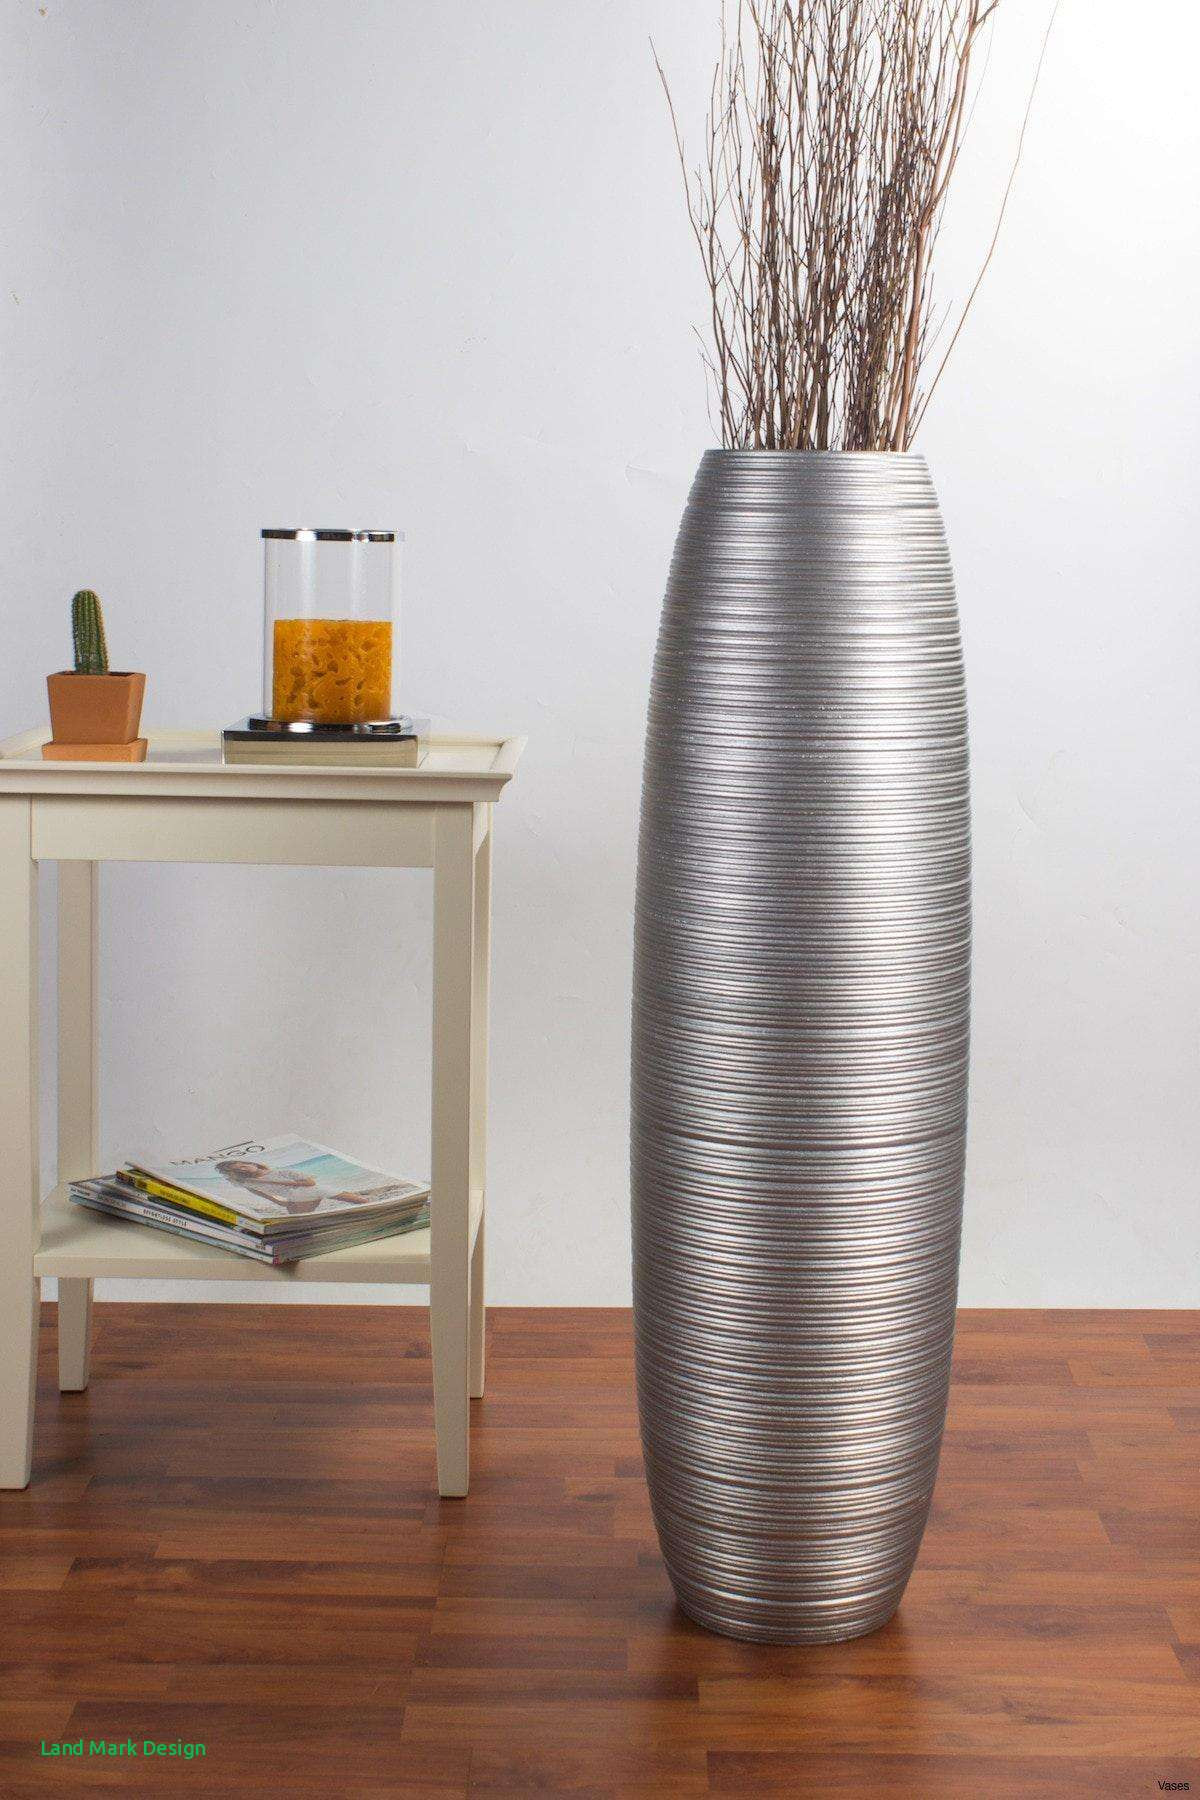 Plant Vases Walmart Of Image Of Large Metal Floor Vases Vases Artificial Plants Collection Pertaining to Large Metal Floor Vases Image Silver Floor Vase Design Of Image Of Large Metal Floor Vases